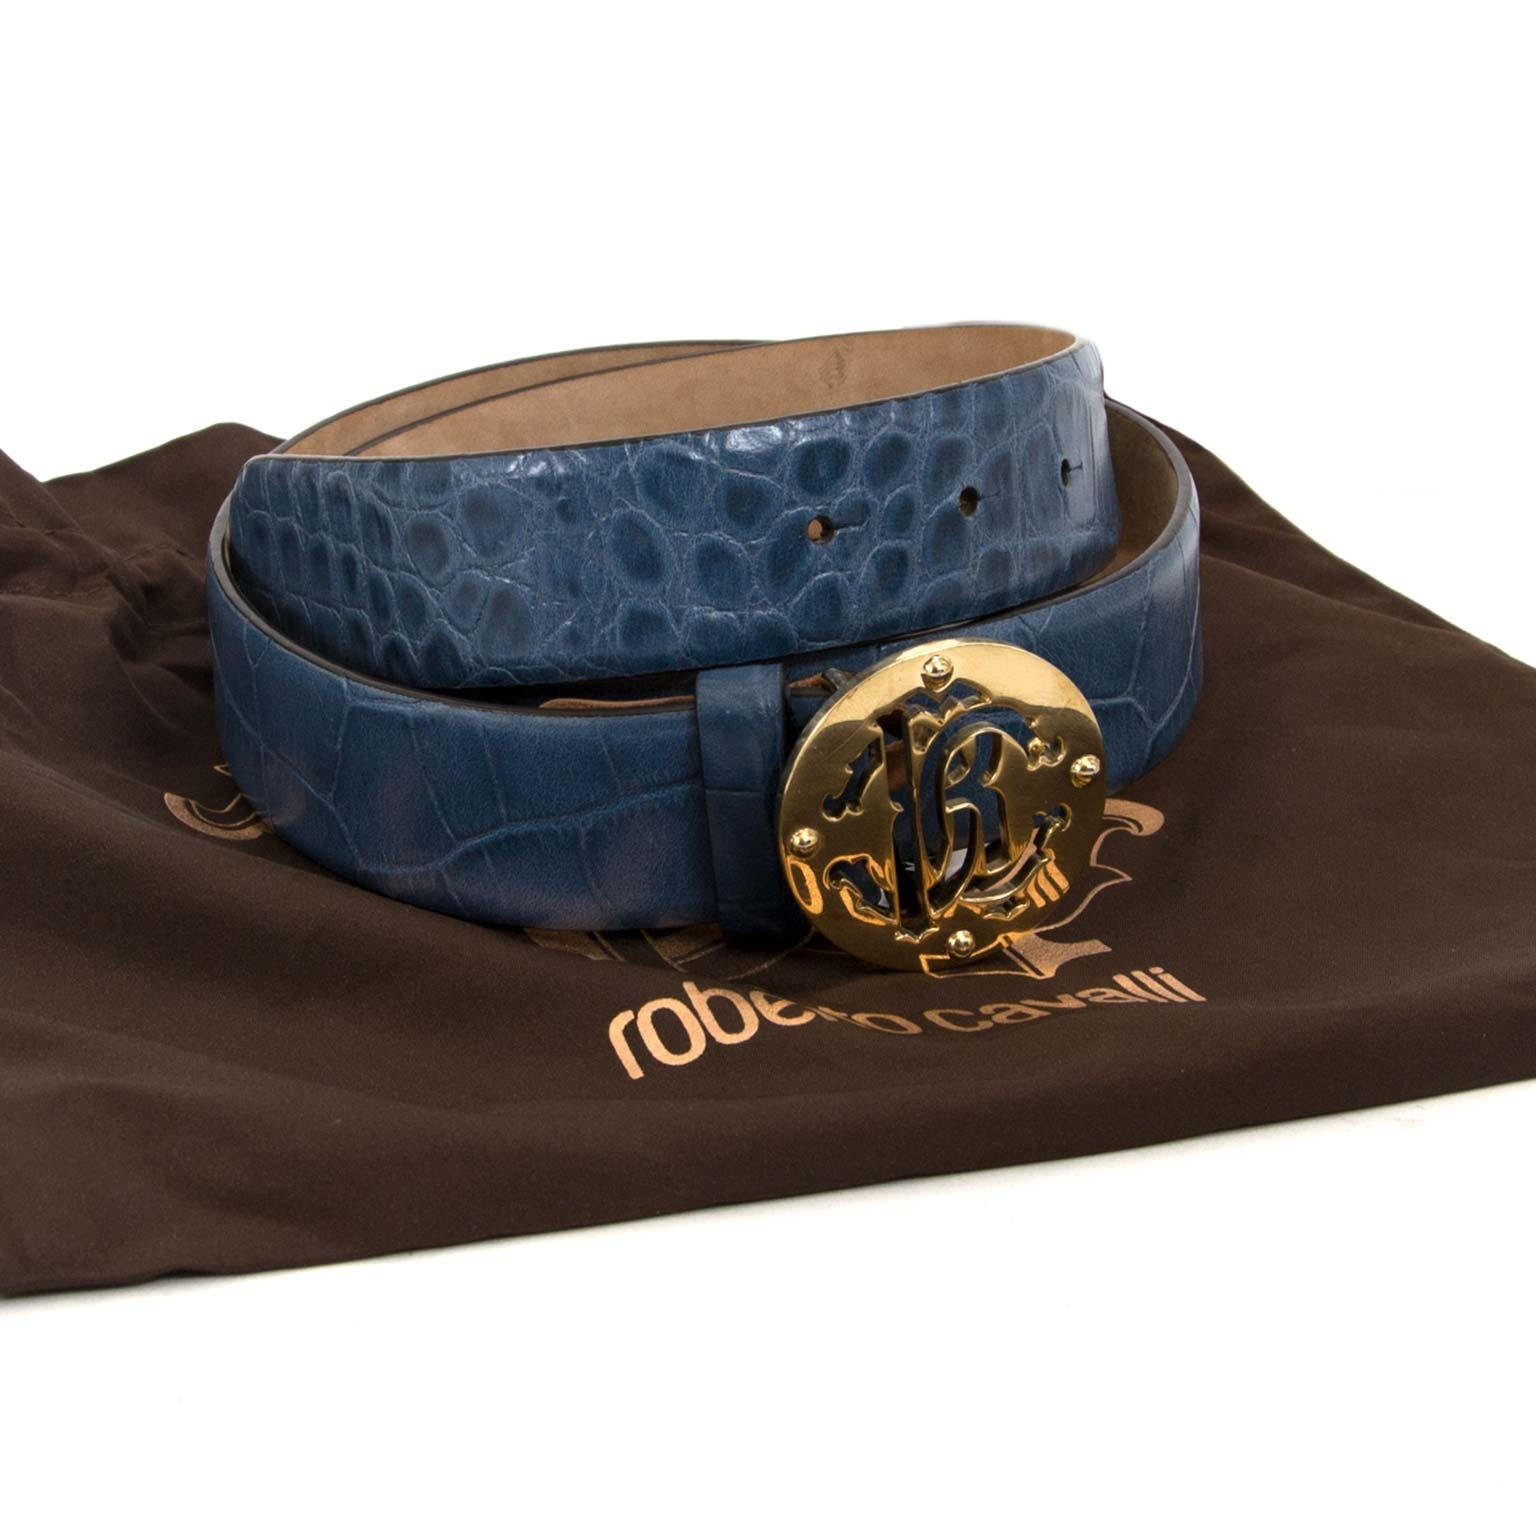 roberto cavalli blue embossed croco rc belt now for sale at labellov vintage fashion webshop belgium